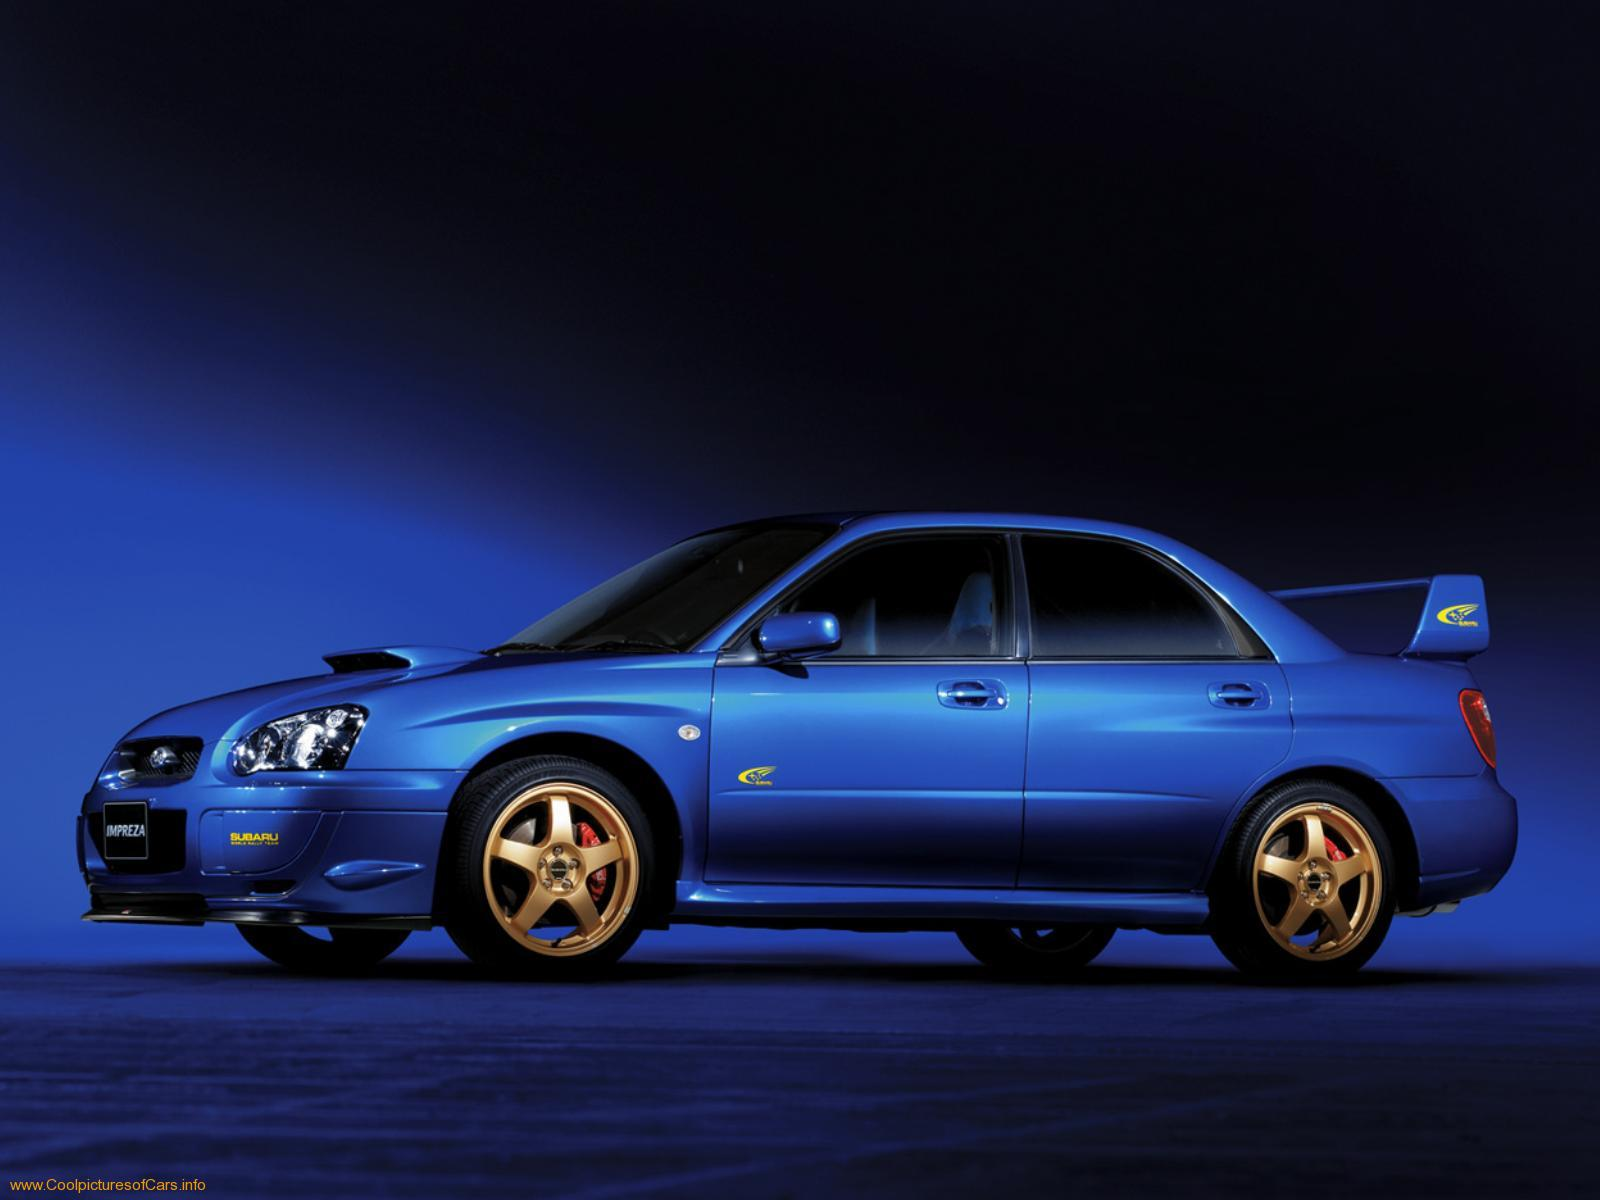 2004 subaru wrx sti wallpaper wallpapersafari. Black Bedroom Furniture Sets. Home Design Ideas